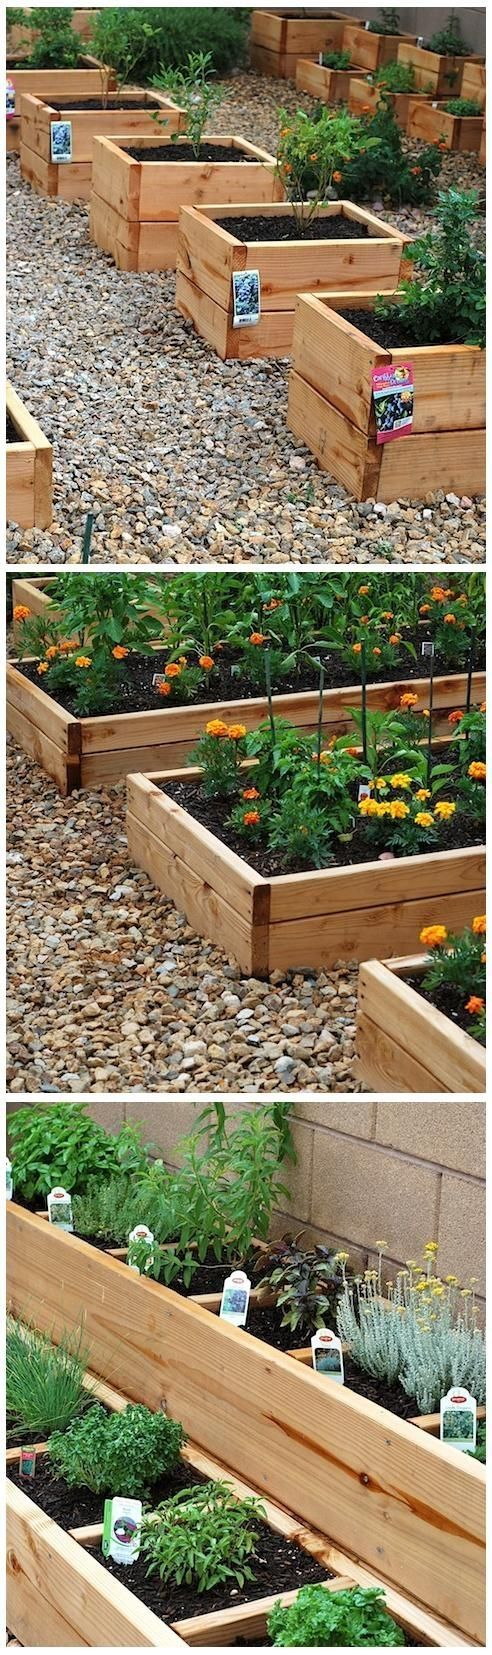 Idea for 2013 garden: Mini-raised beds along fencing by maria9735